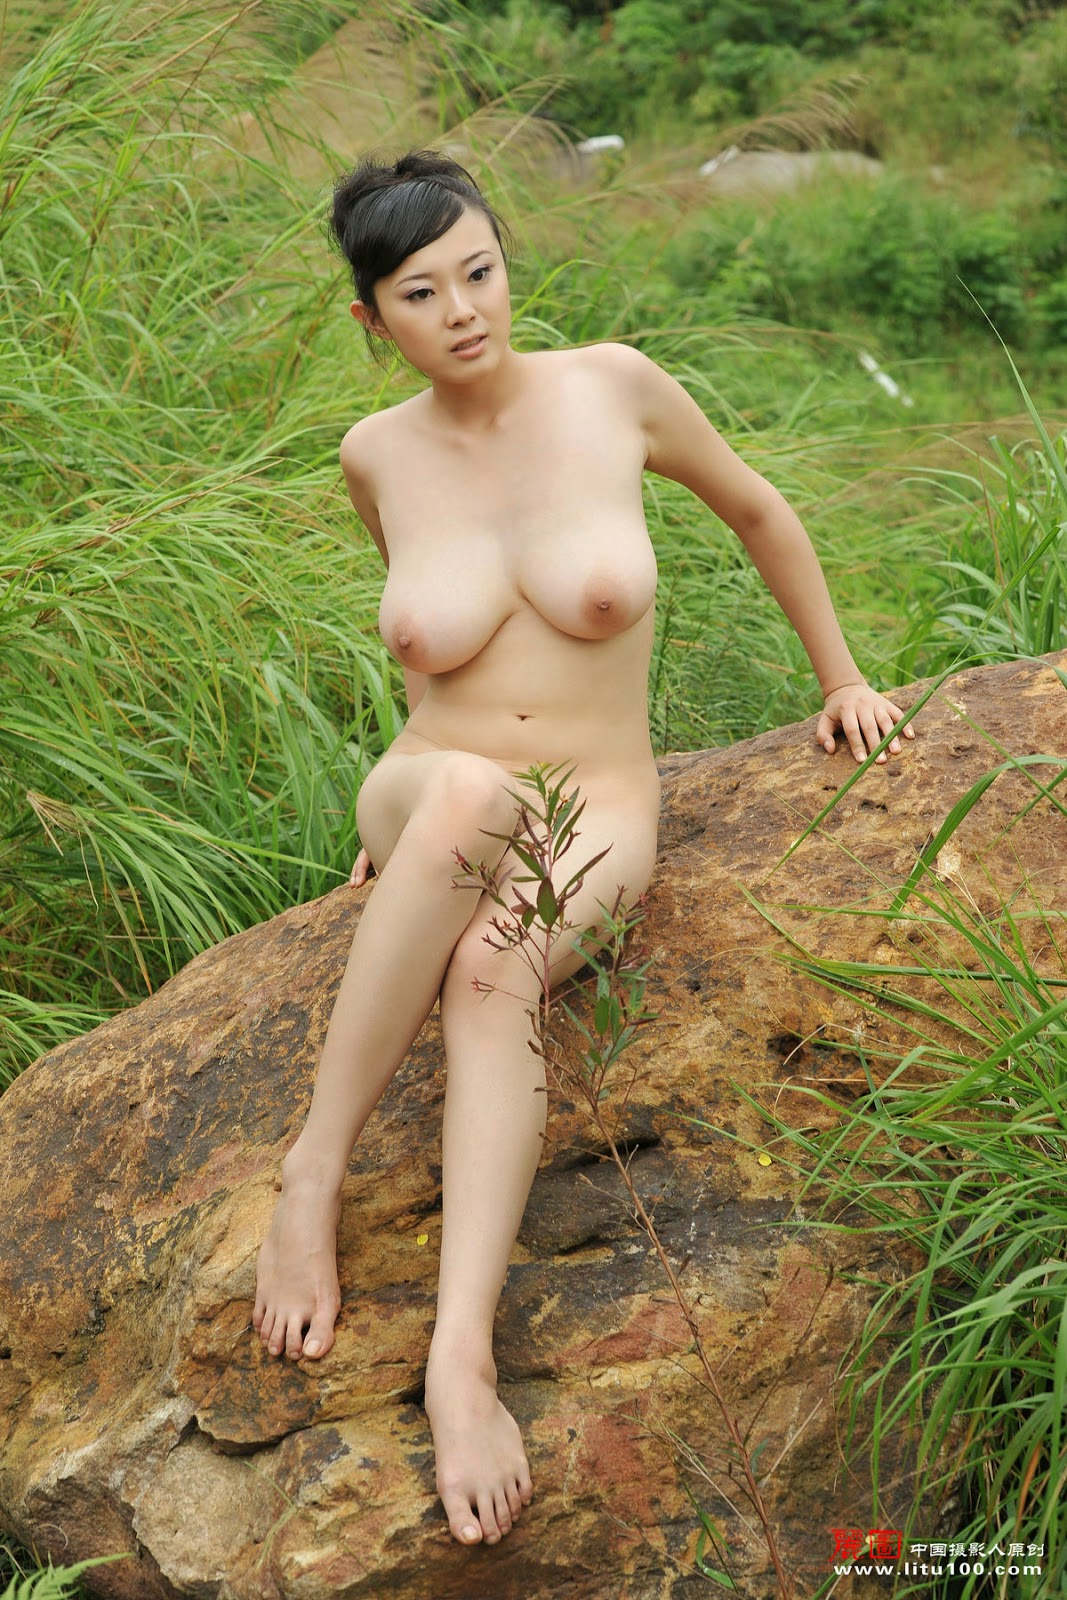 Very grateful chinese nude art model be